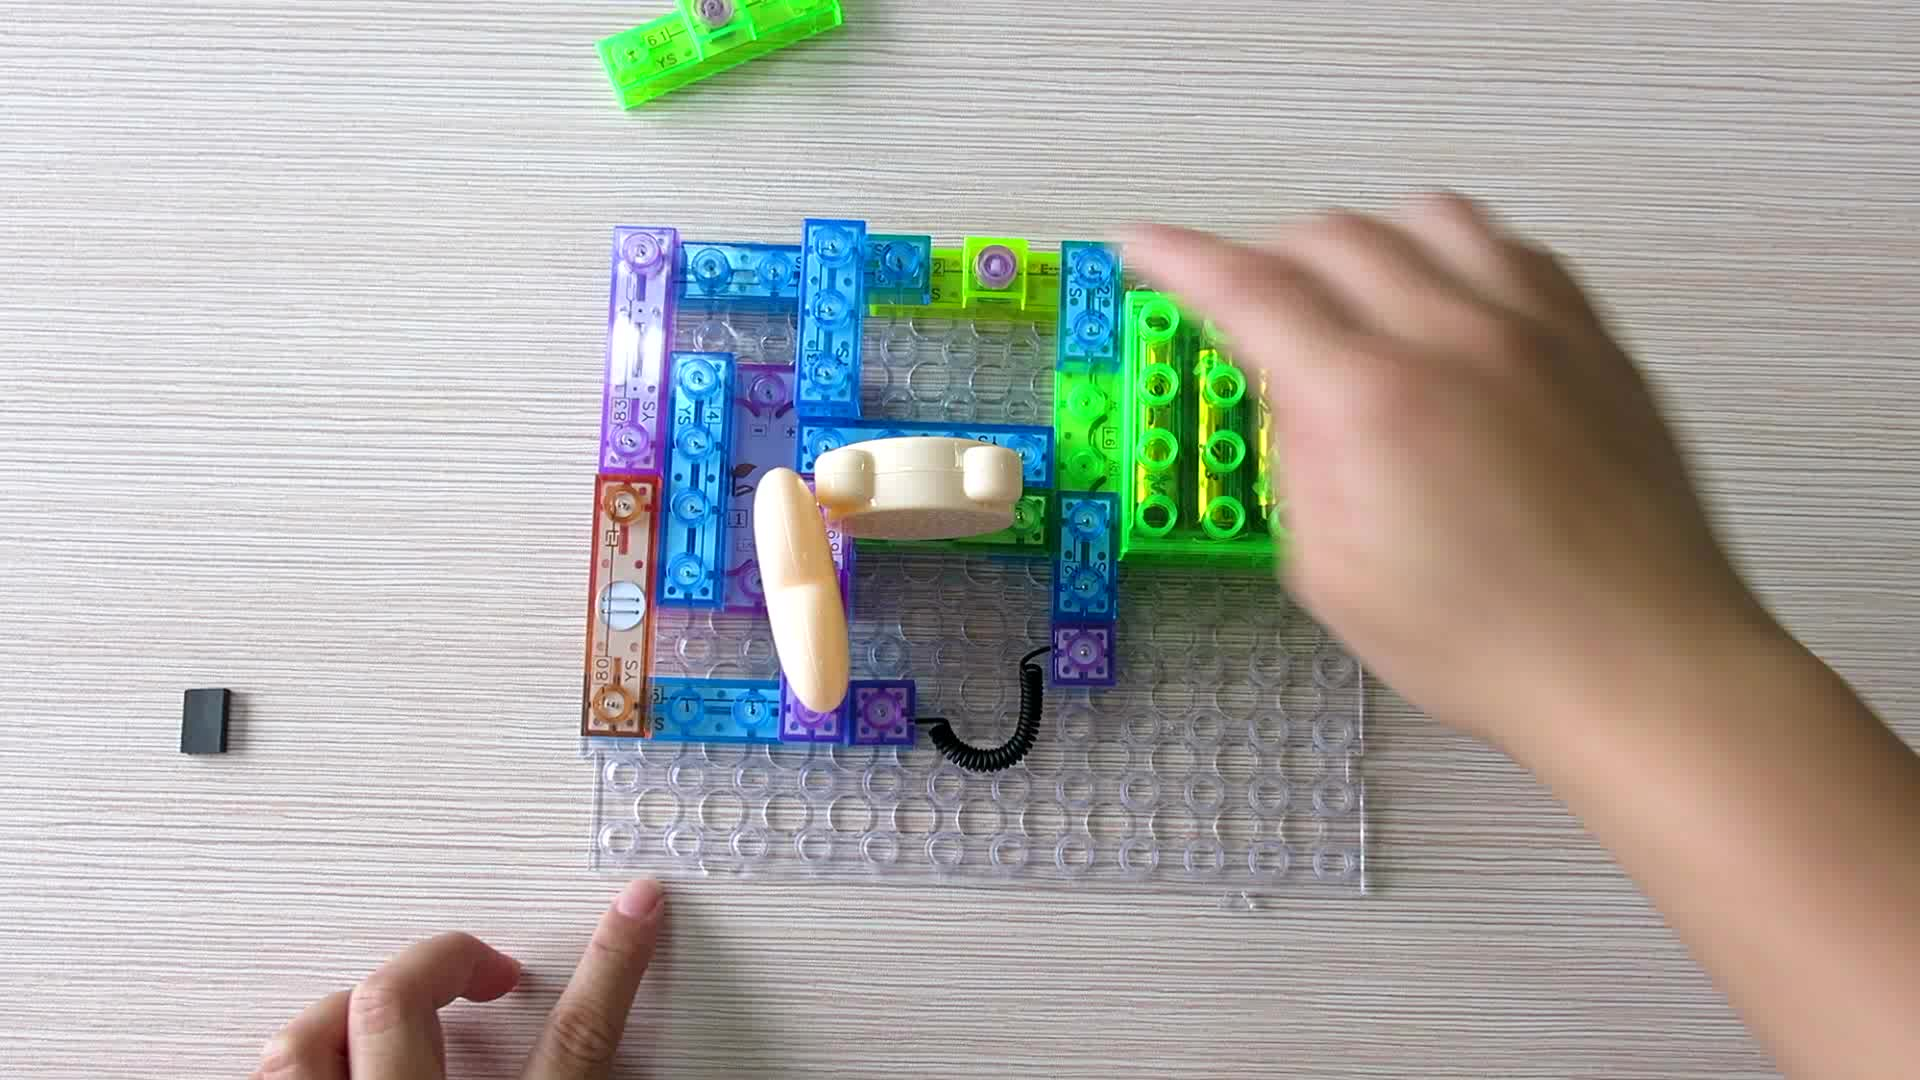 DIY electric block stem toys educational with sound